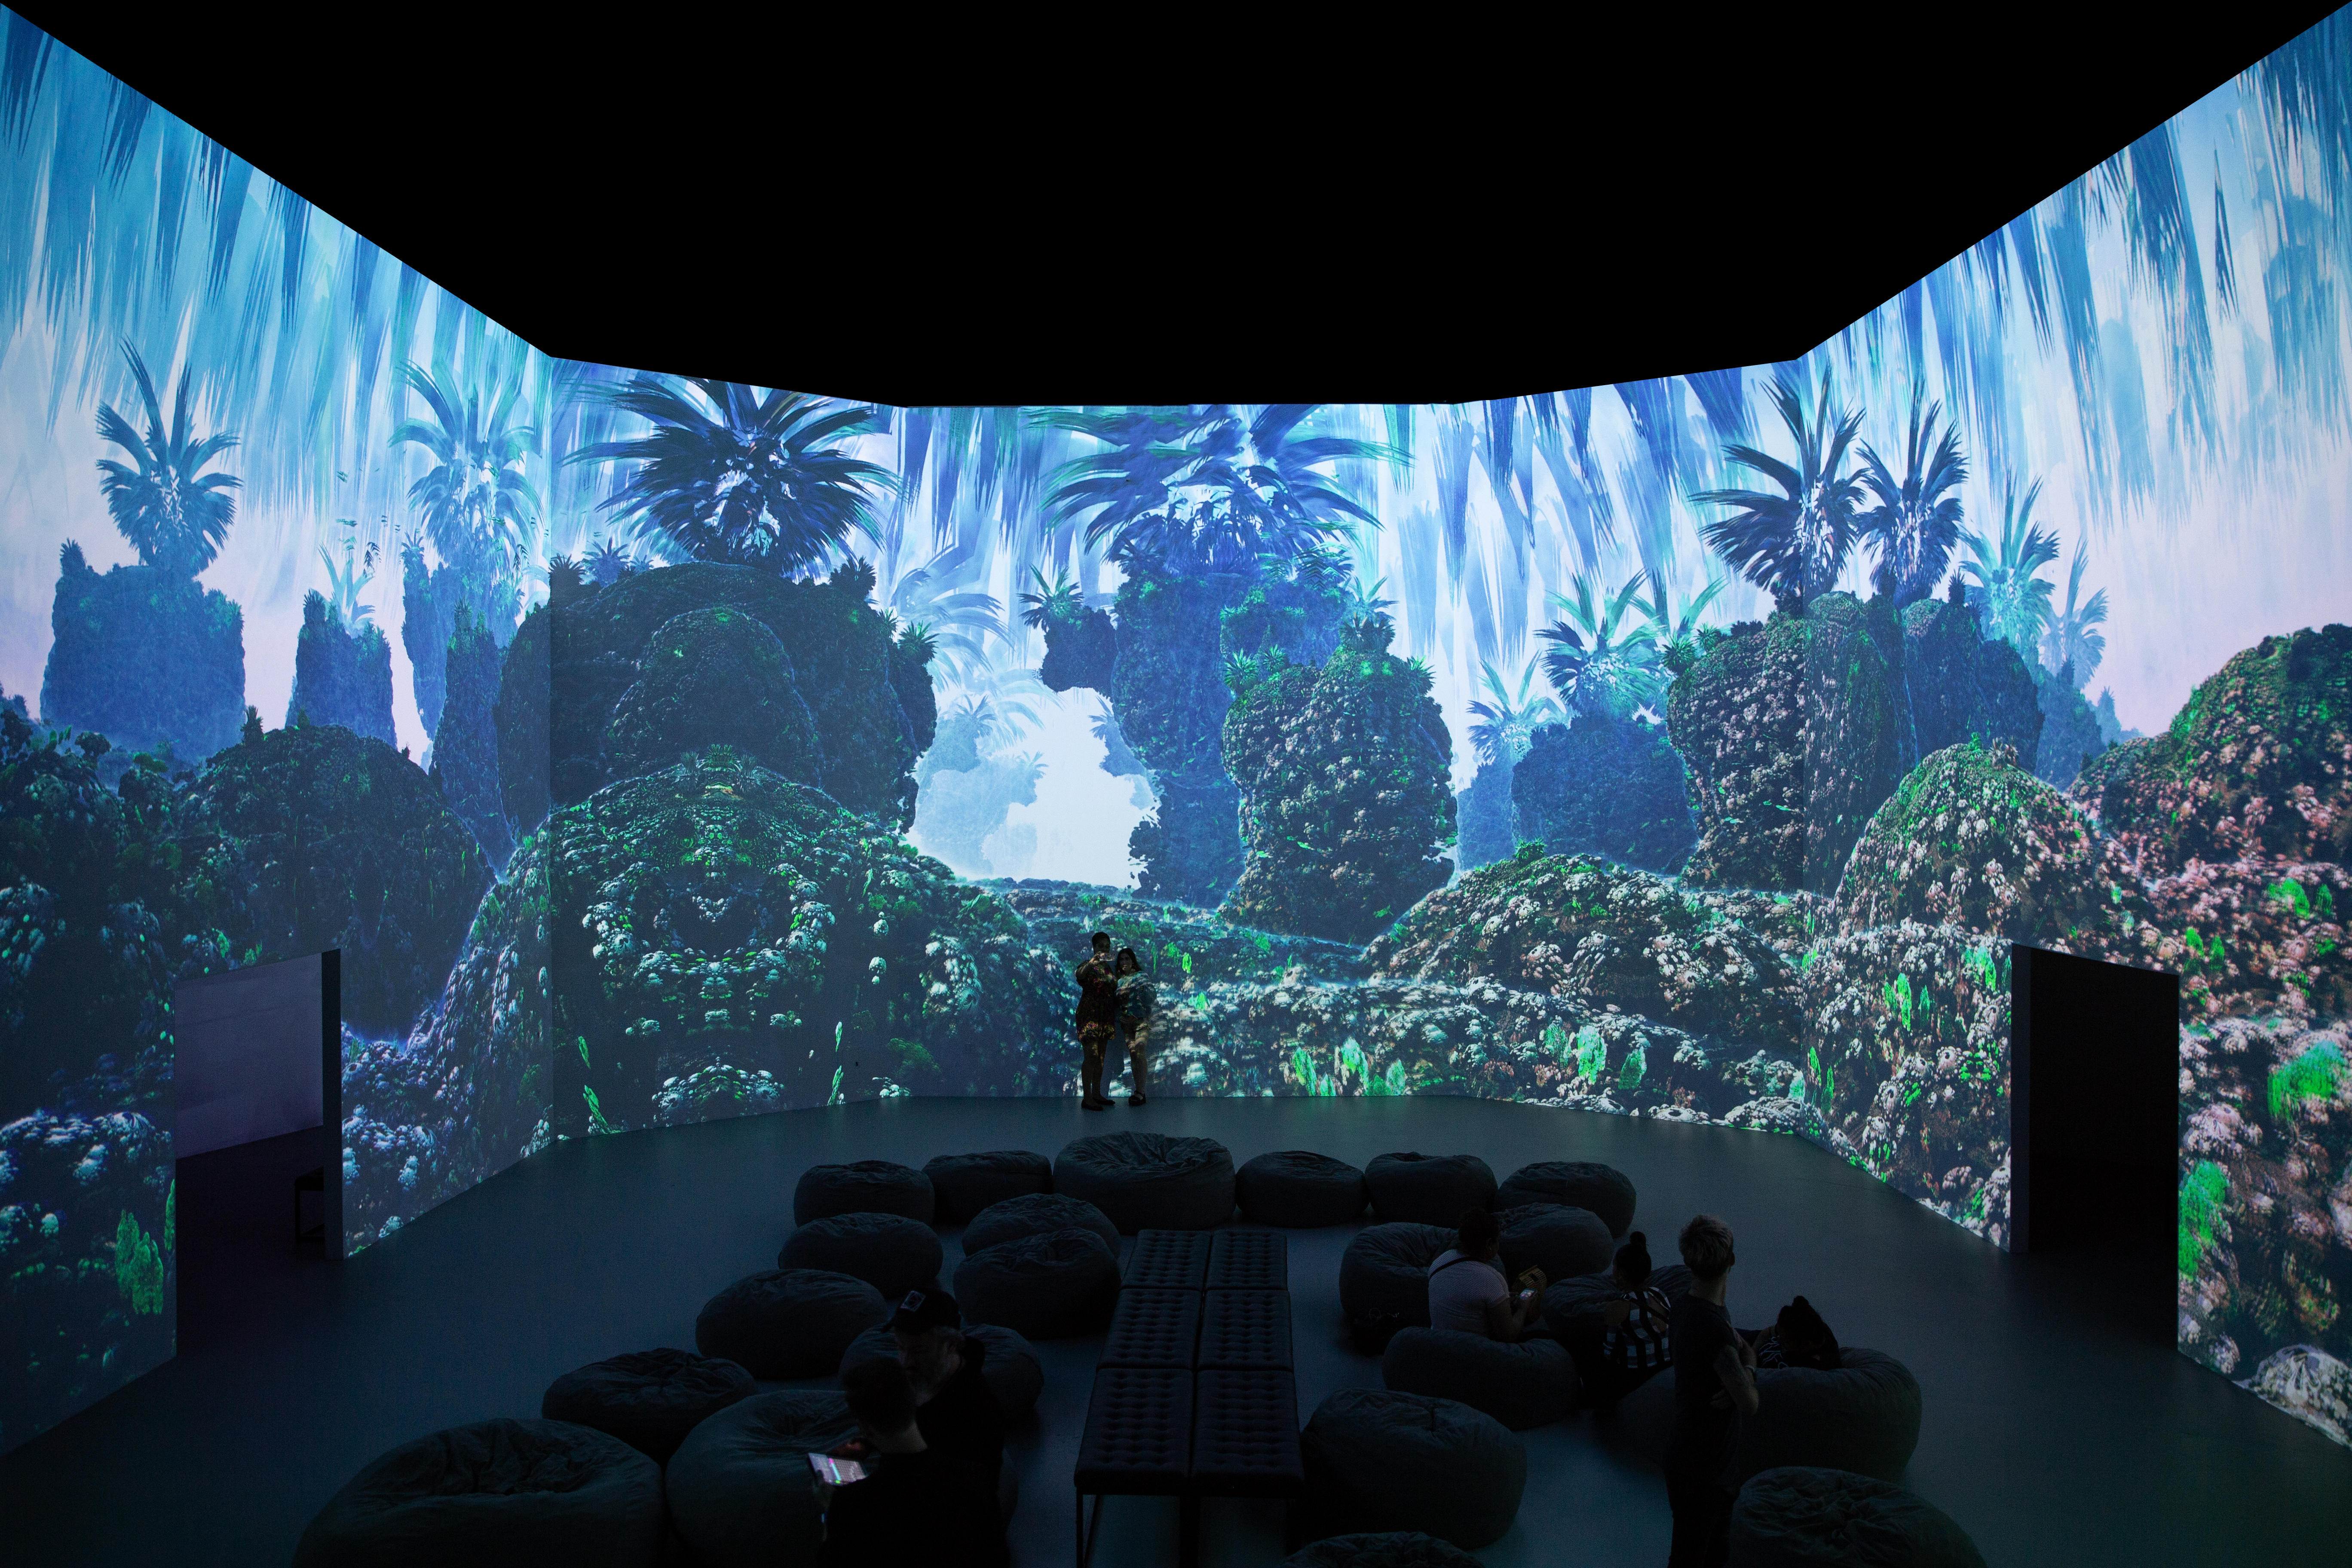 Explore the mind-bending sci-fi worlds and infinite 3D geometric patterns at Fractal Worlds by Julius Horsthuis, a new immersive art exhibition at ARTECHOUSE. (Image: Courtesy ARTECHOUSE)